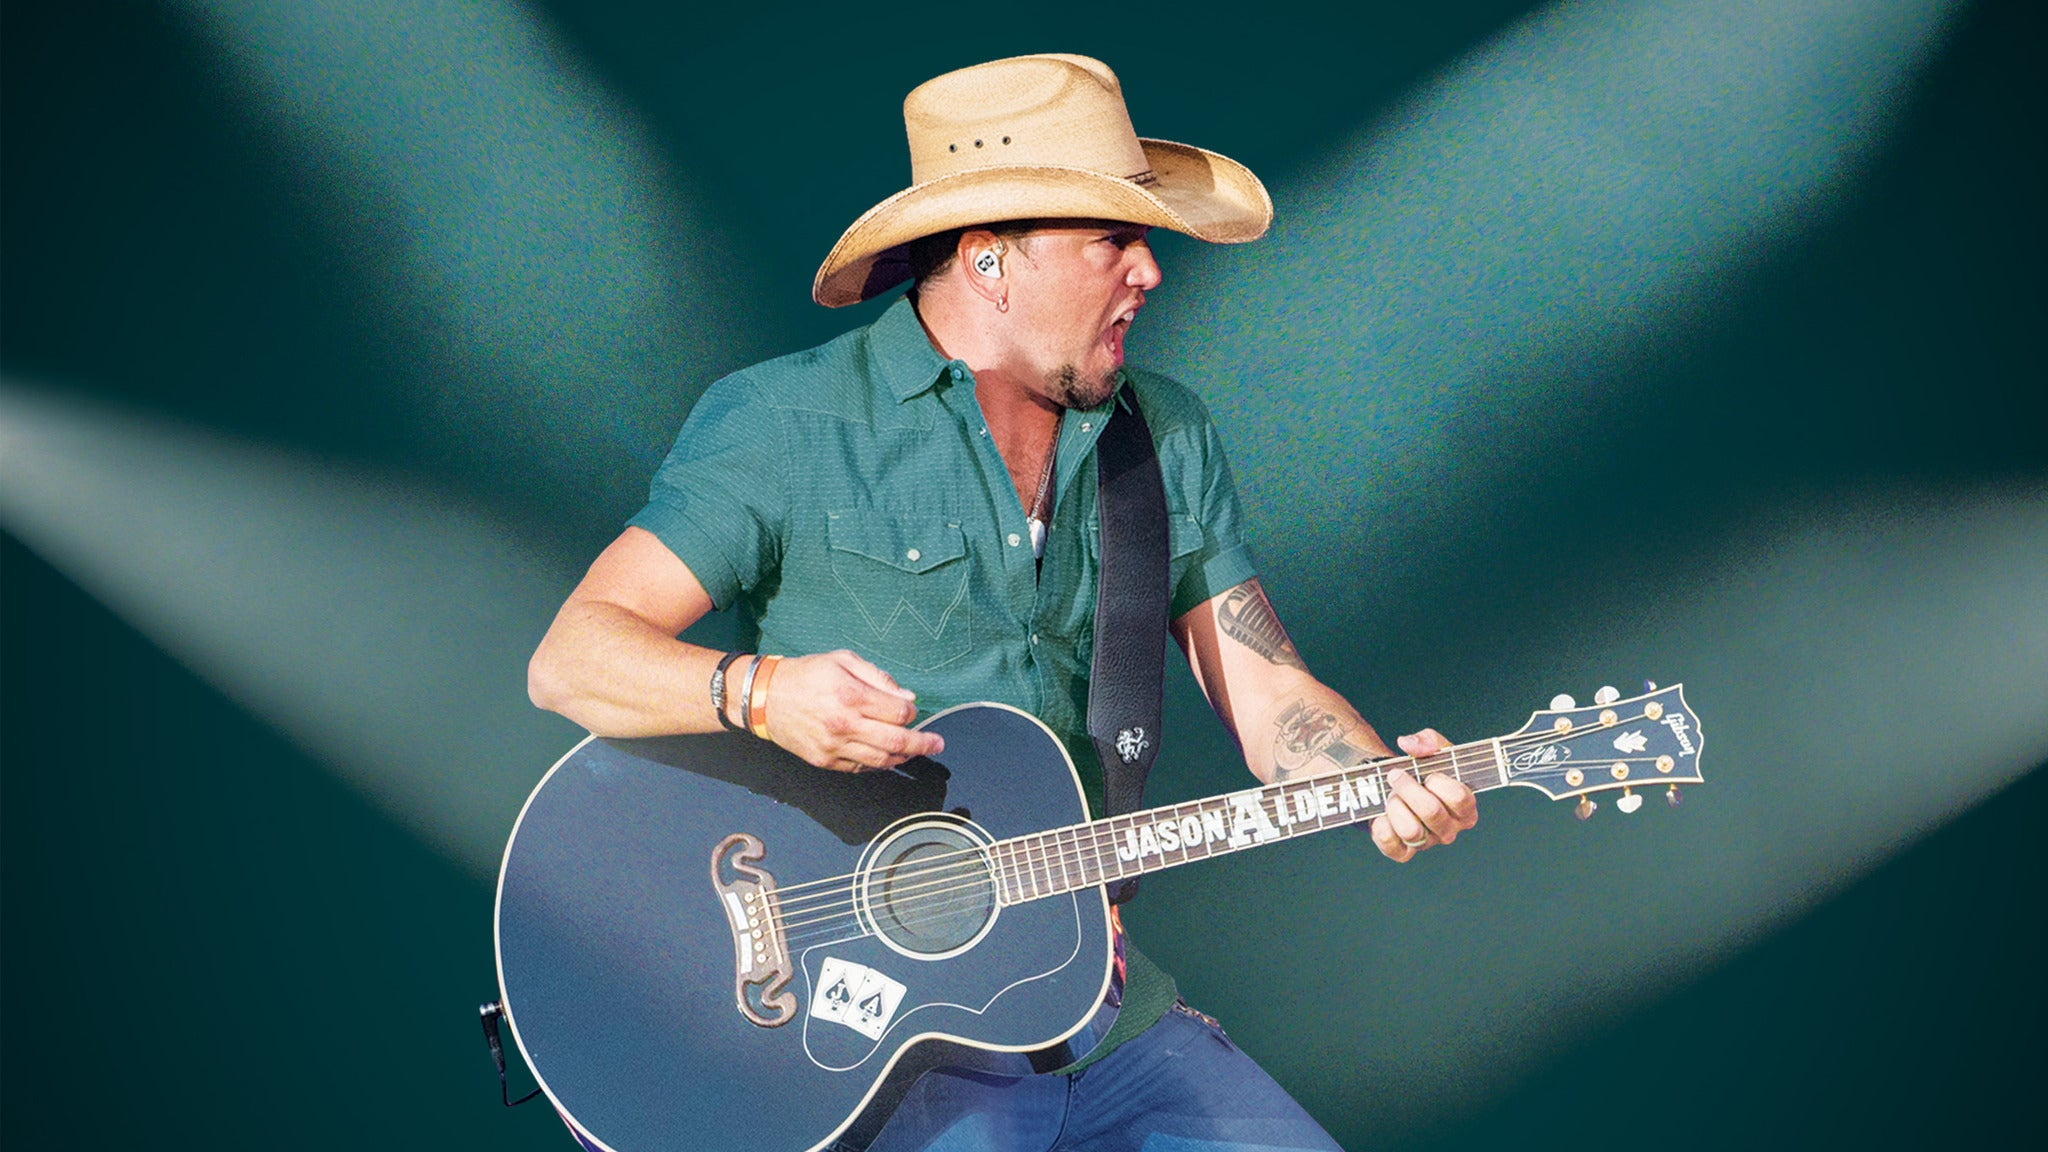 Jason Aldean - They Don't Know Tour